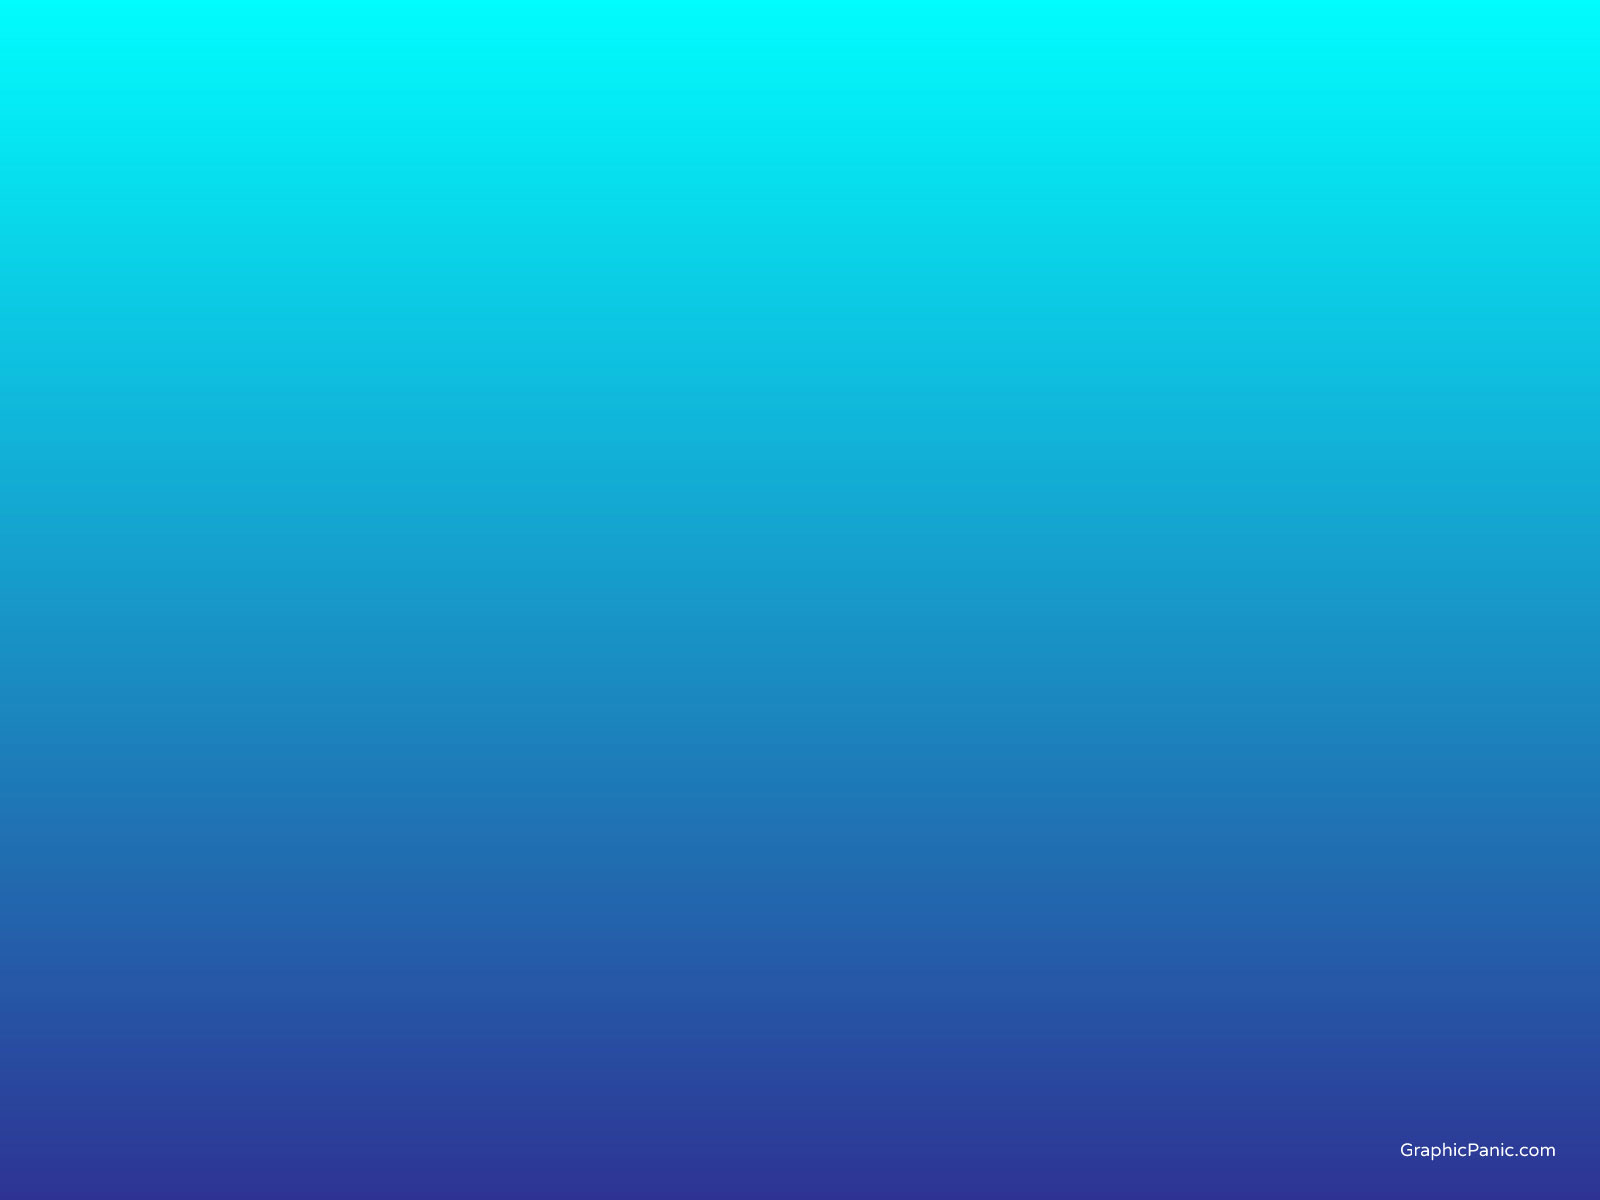 teal blue wallpaper for iphone